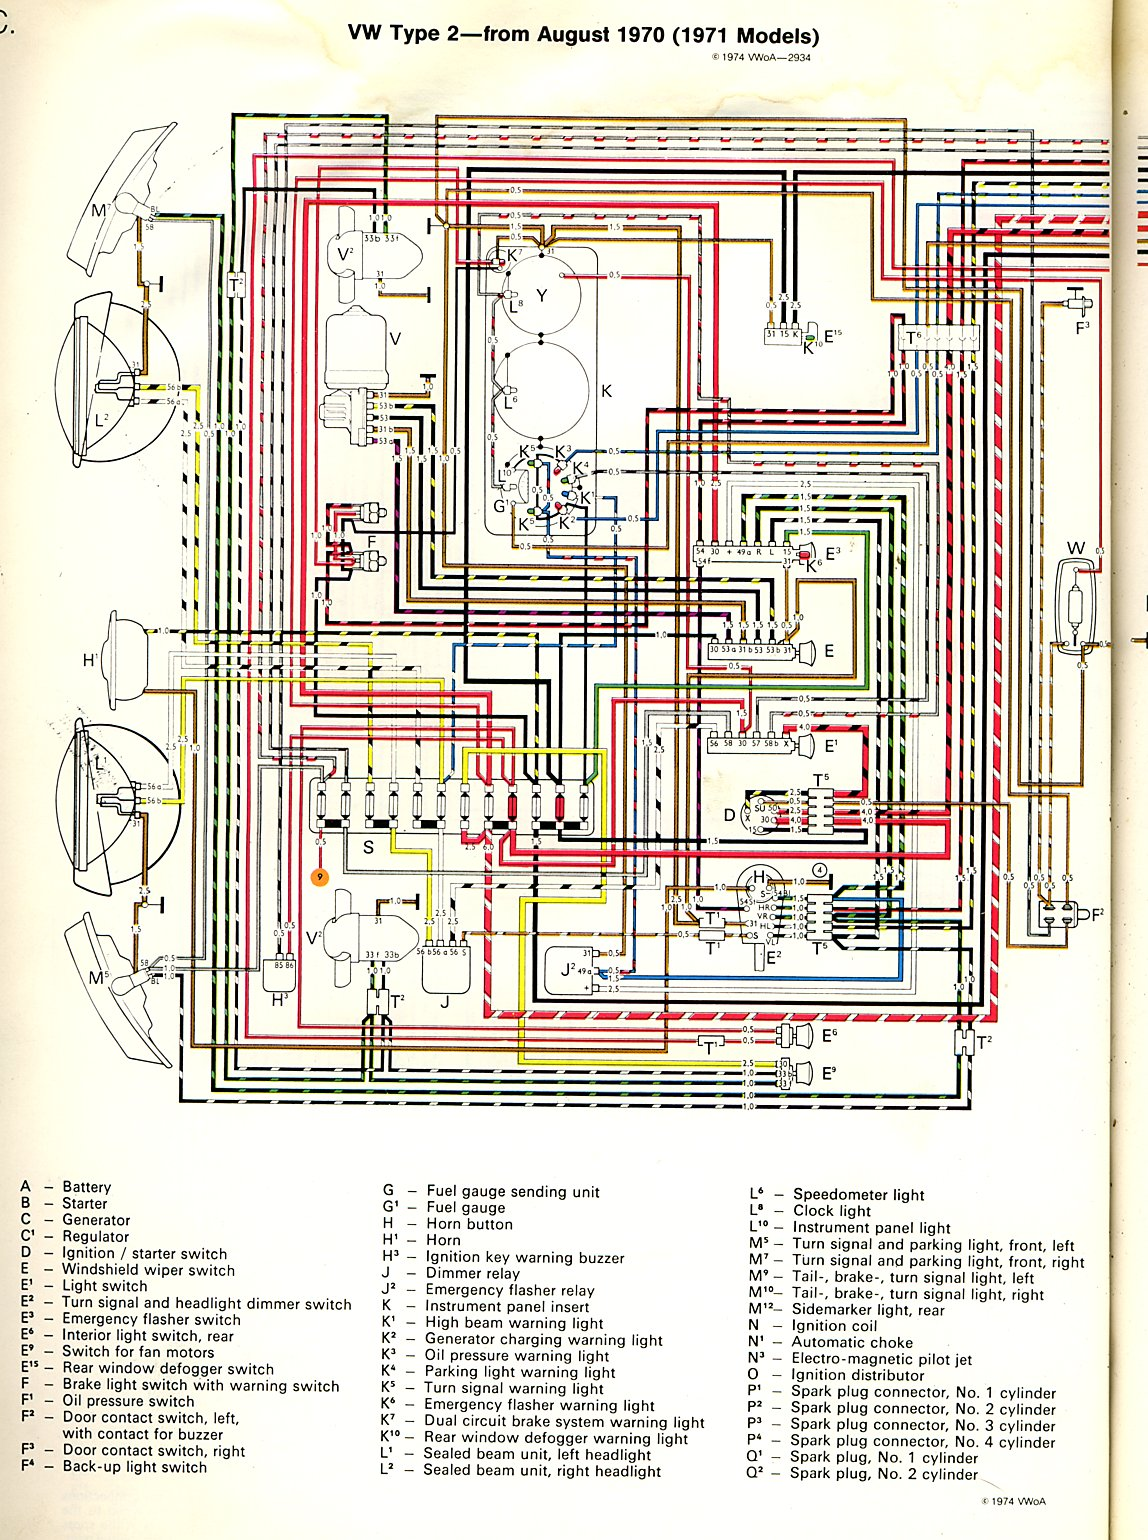 1973 Plymouth Duster Wiring Diagrams Automotive Lights Electrical Roadrunner Diagram Thesamba Com Type 2 Rh 1970 Dodge Challenger Parts